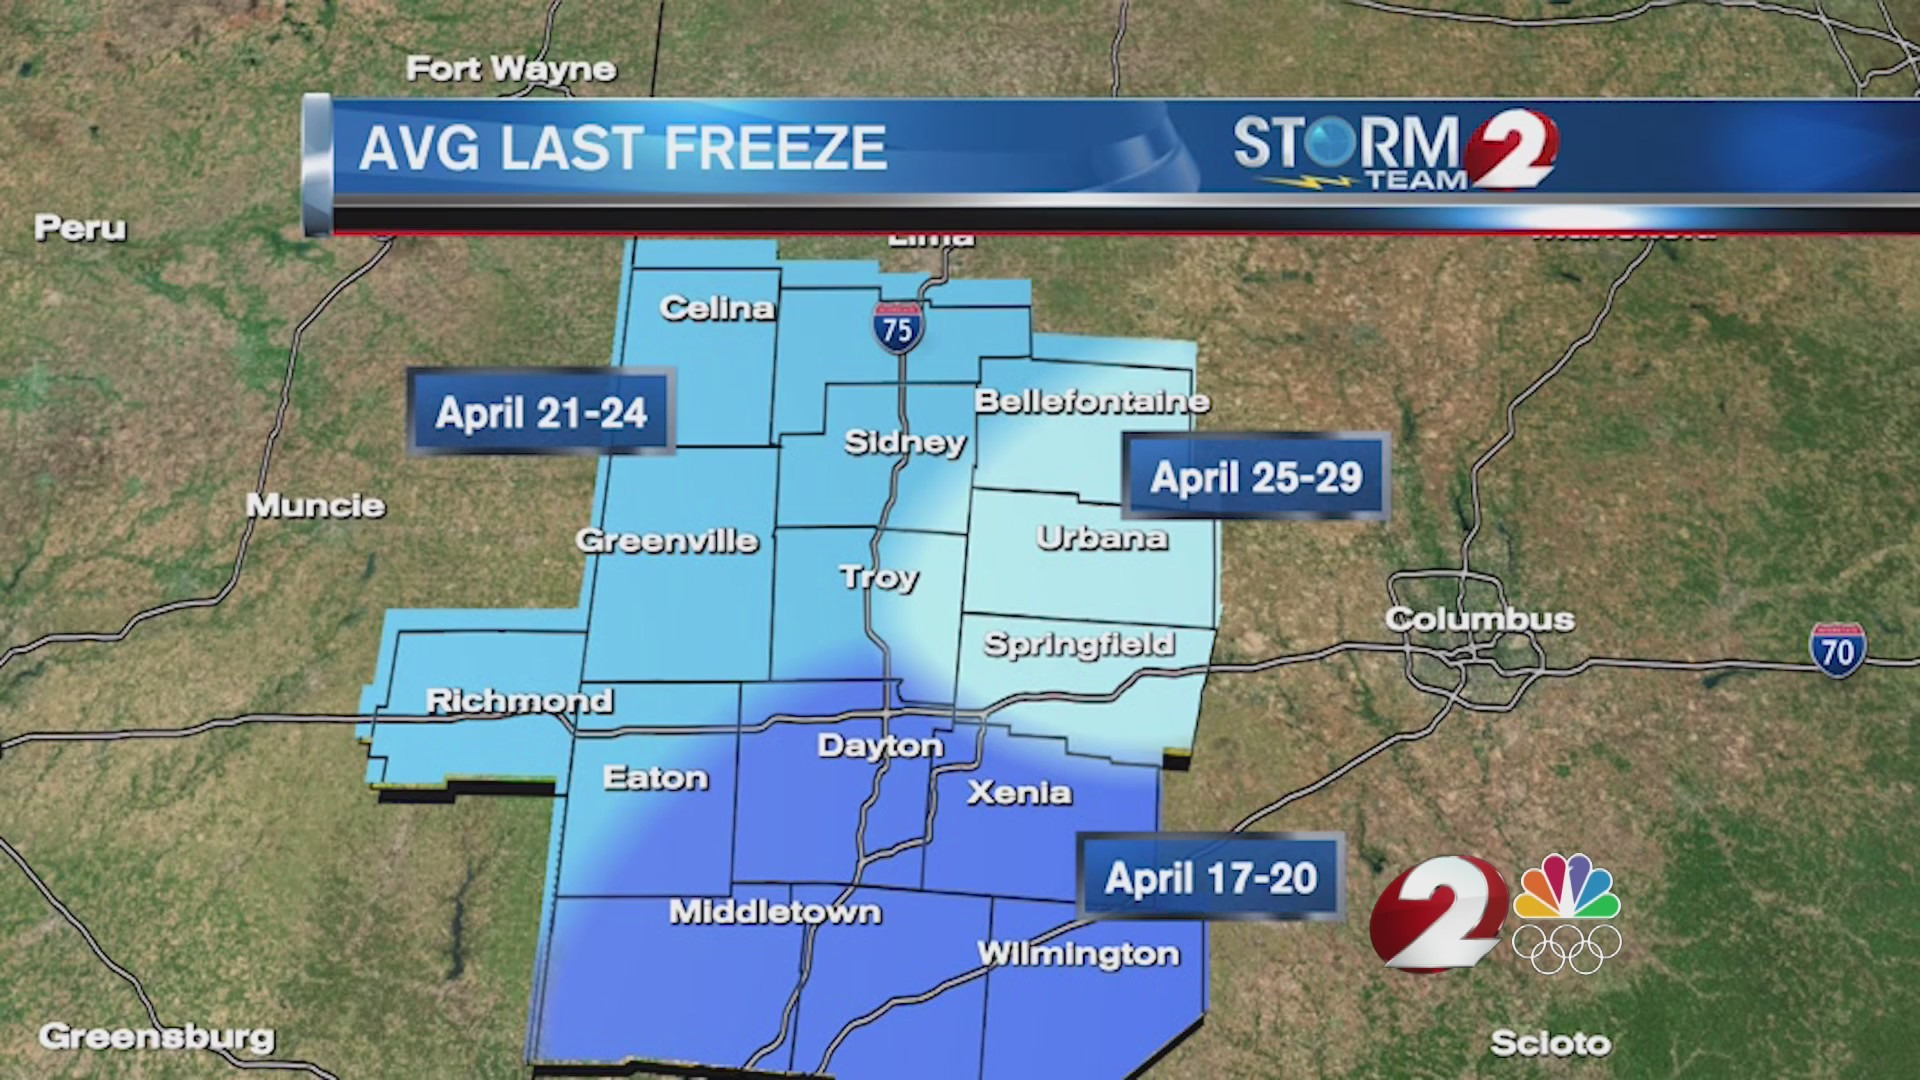 Take a look at the avg last freeze dates in the Miami Valley